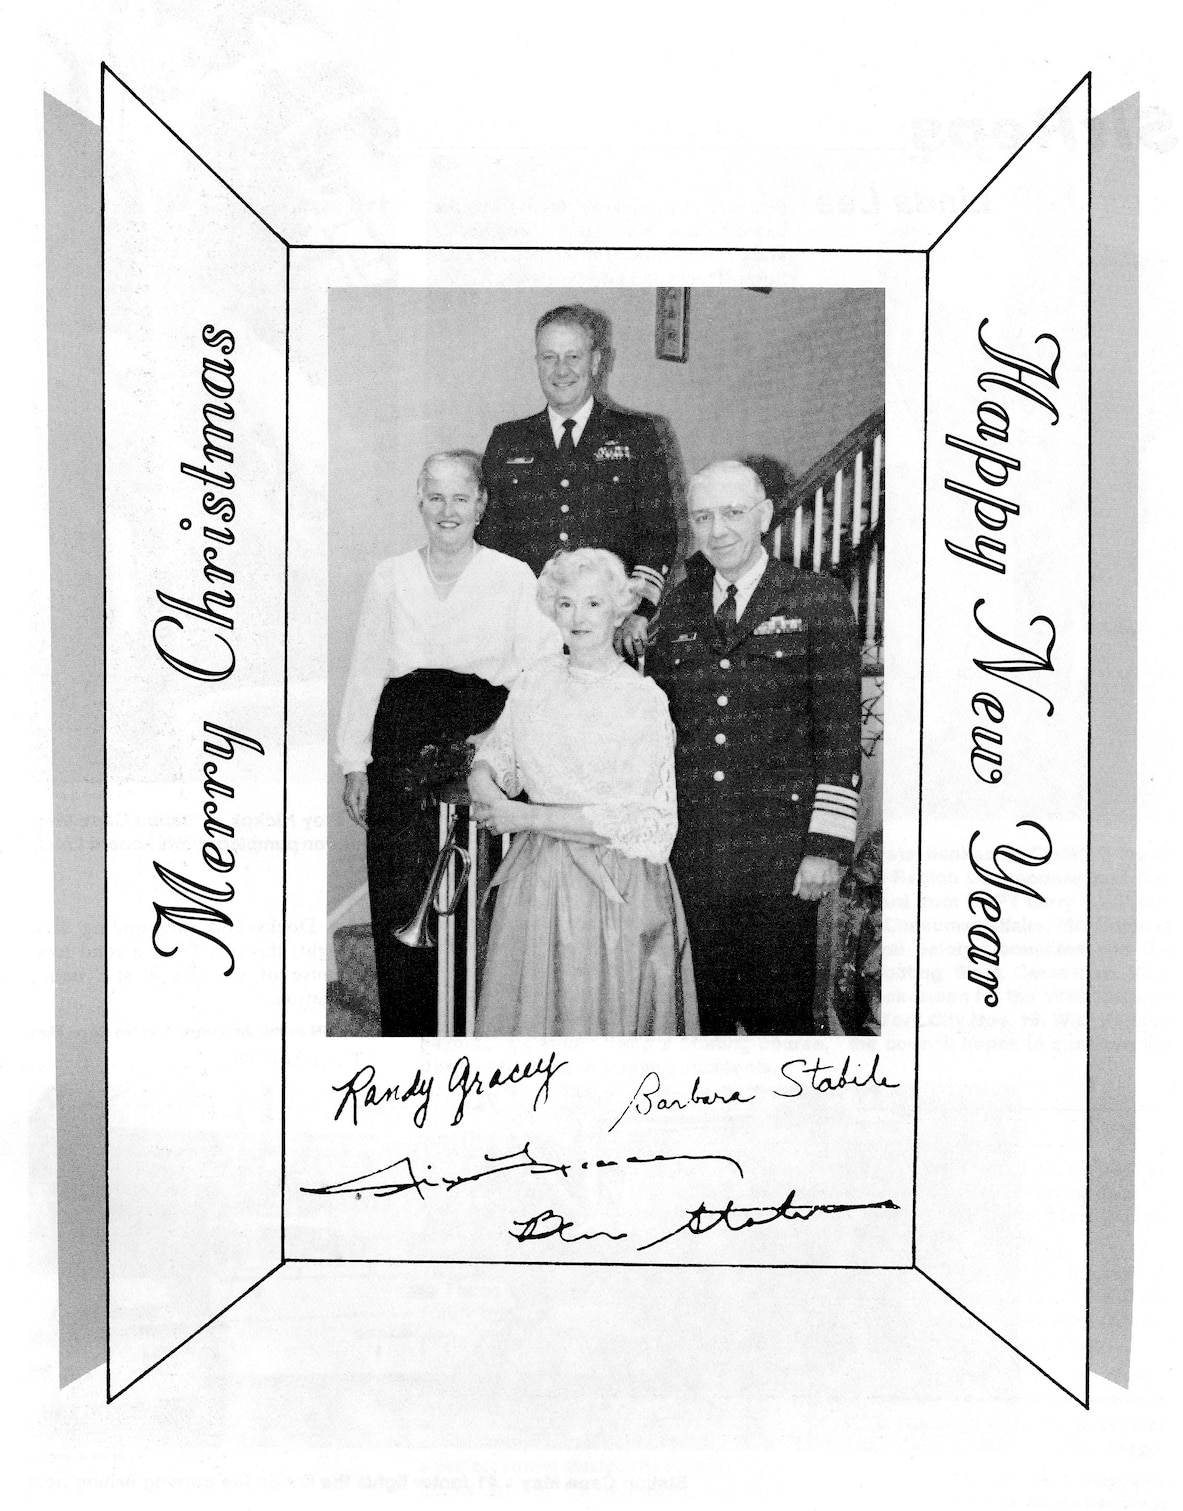 Admiral Gracey's 1985 Christmas Card to the Coast Guard Family.